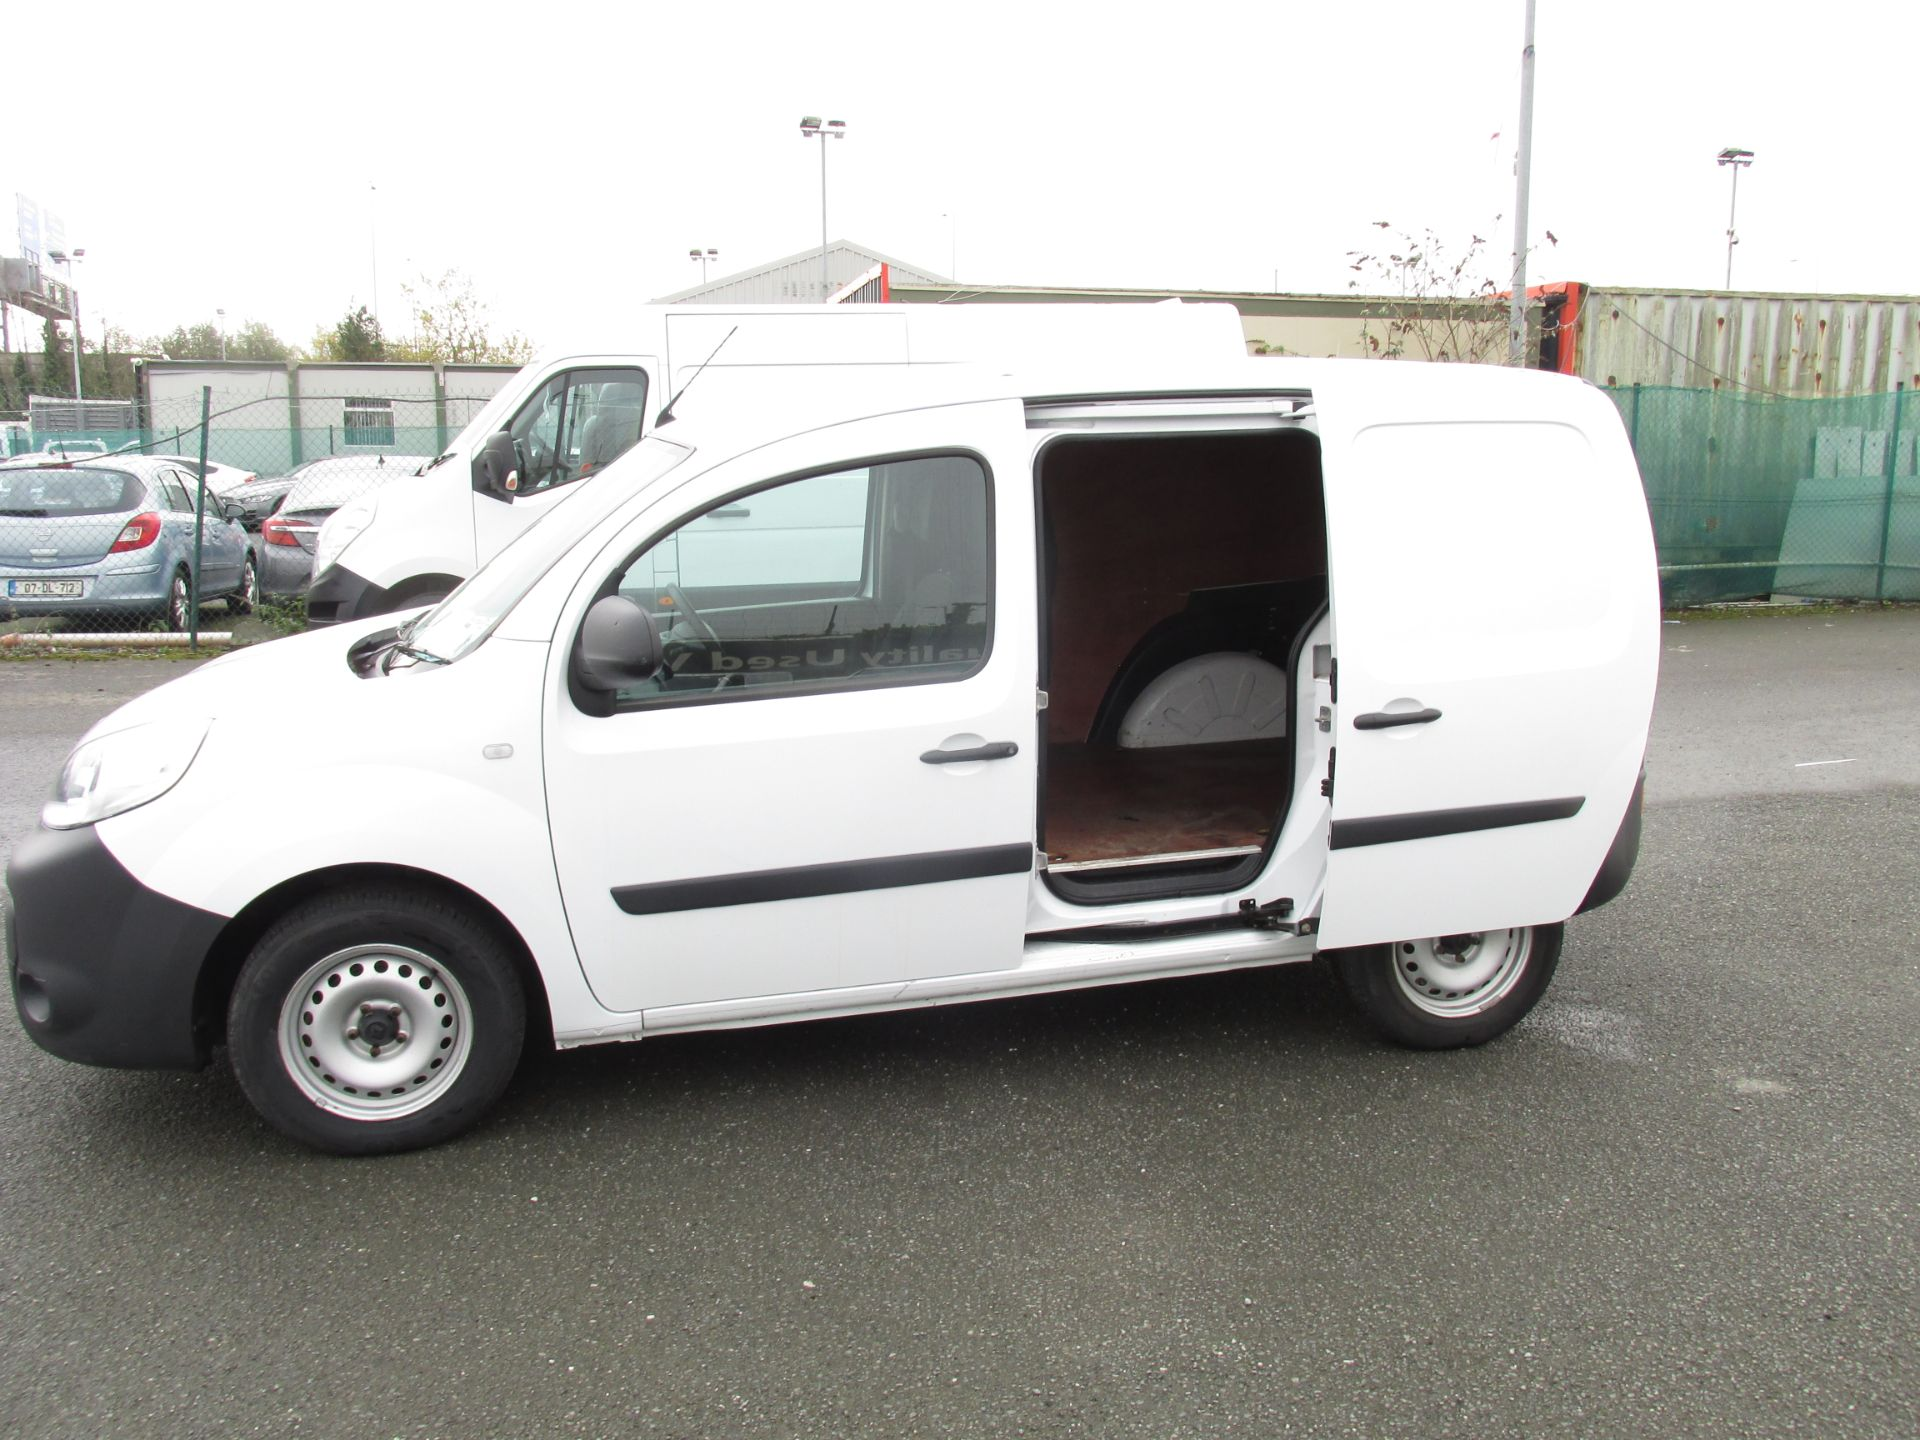 2017 Renault Kangoo ML19 ENERGY DCI 75 BUSINESS 2D click and collect call sales for more info (171D8222) Image 8